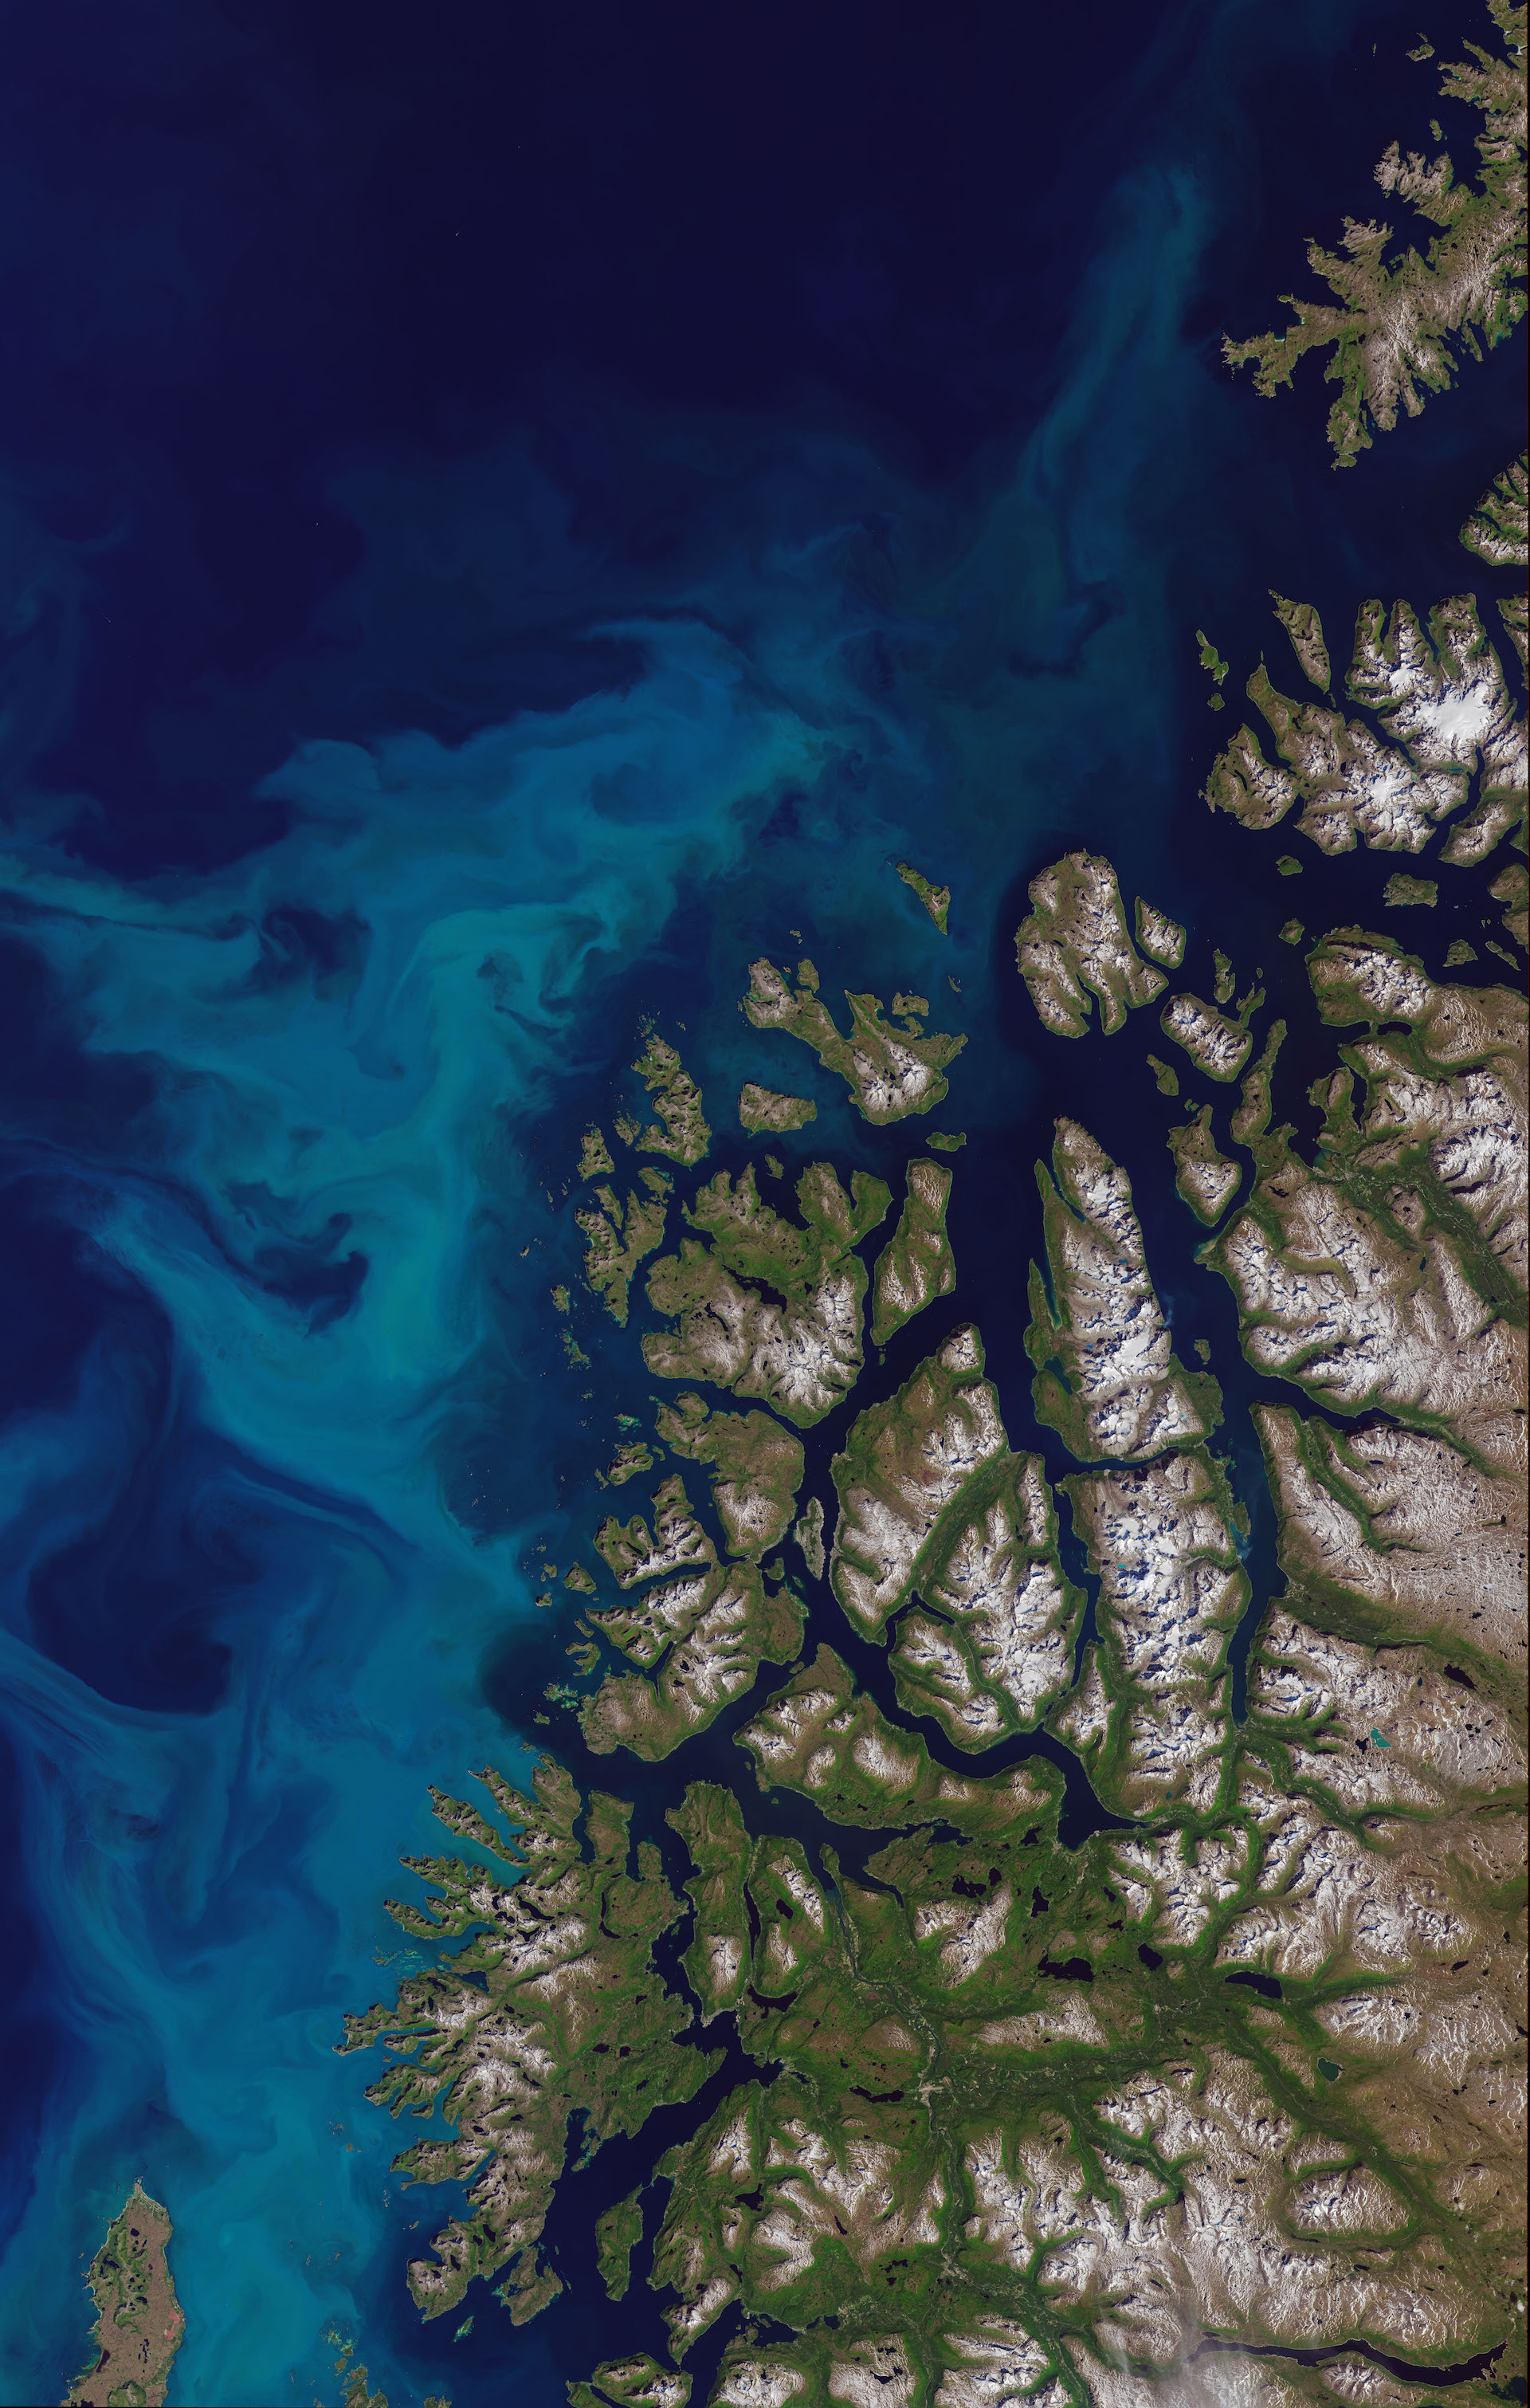 Today's Image of the Day comes thanks to the NASA Earth Observatory and features a look at a phytoplankton bloom in the Norwegian Sea.